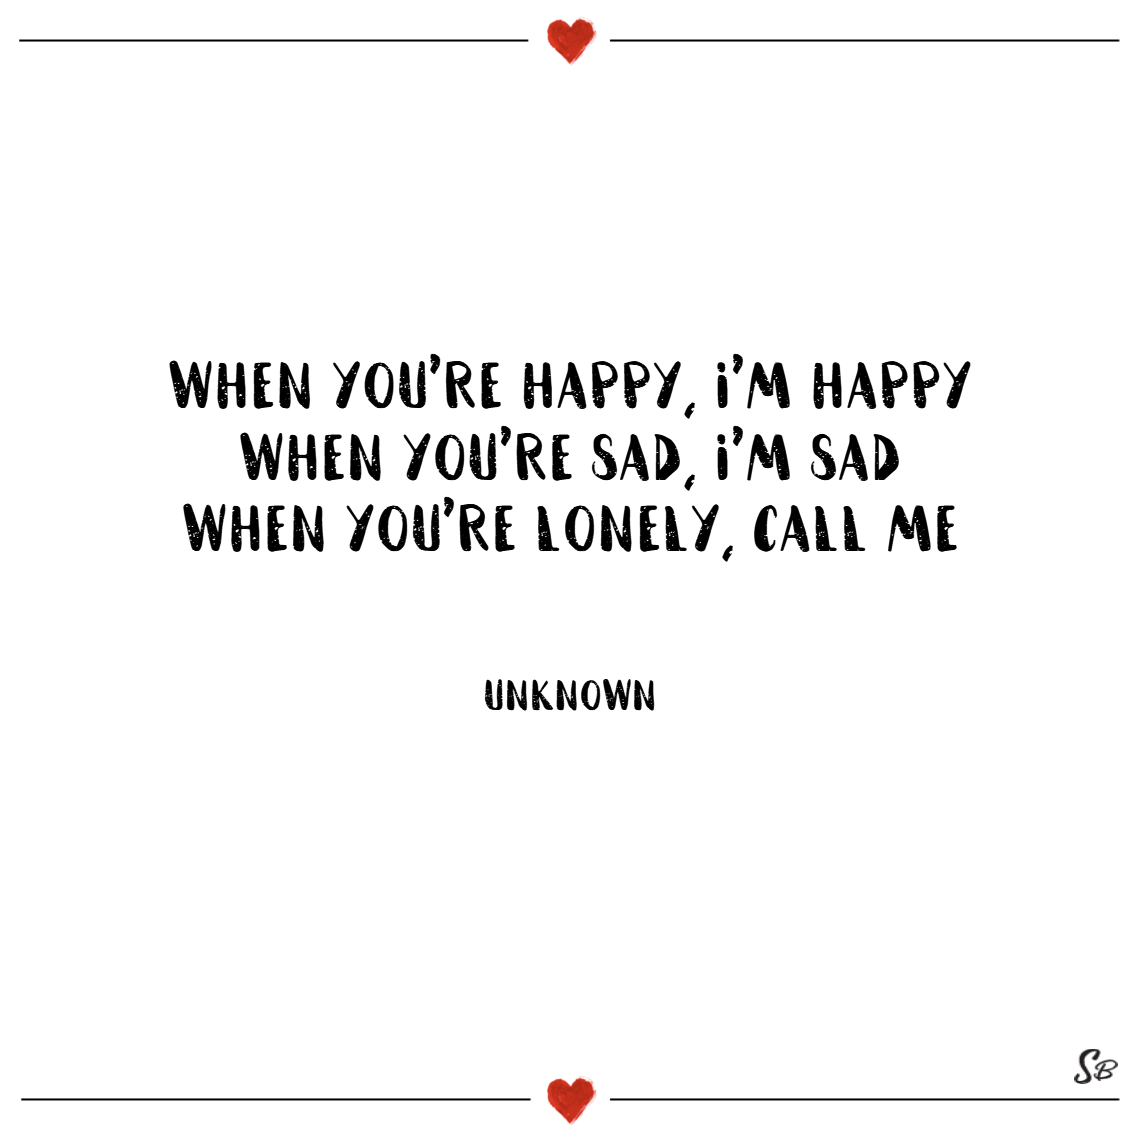 When you're happy, i'm happy. when you're sad, i'm sad. when you're lonely, call me! – unknown